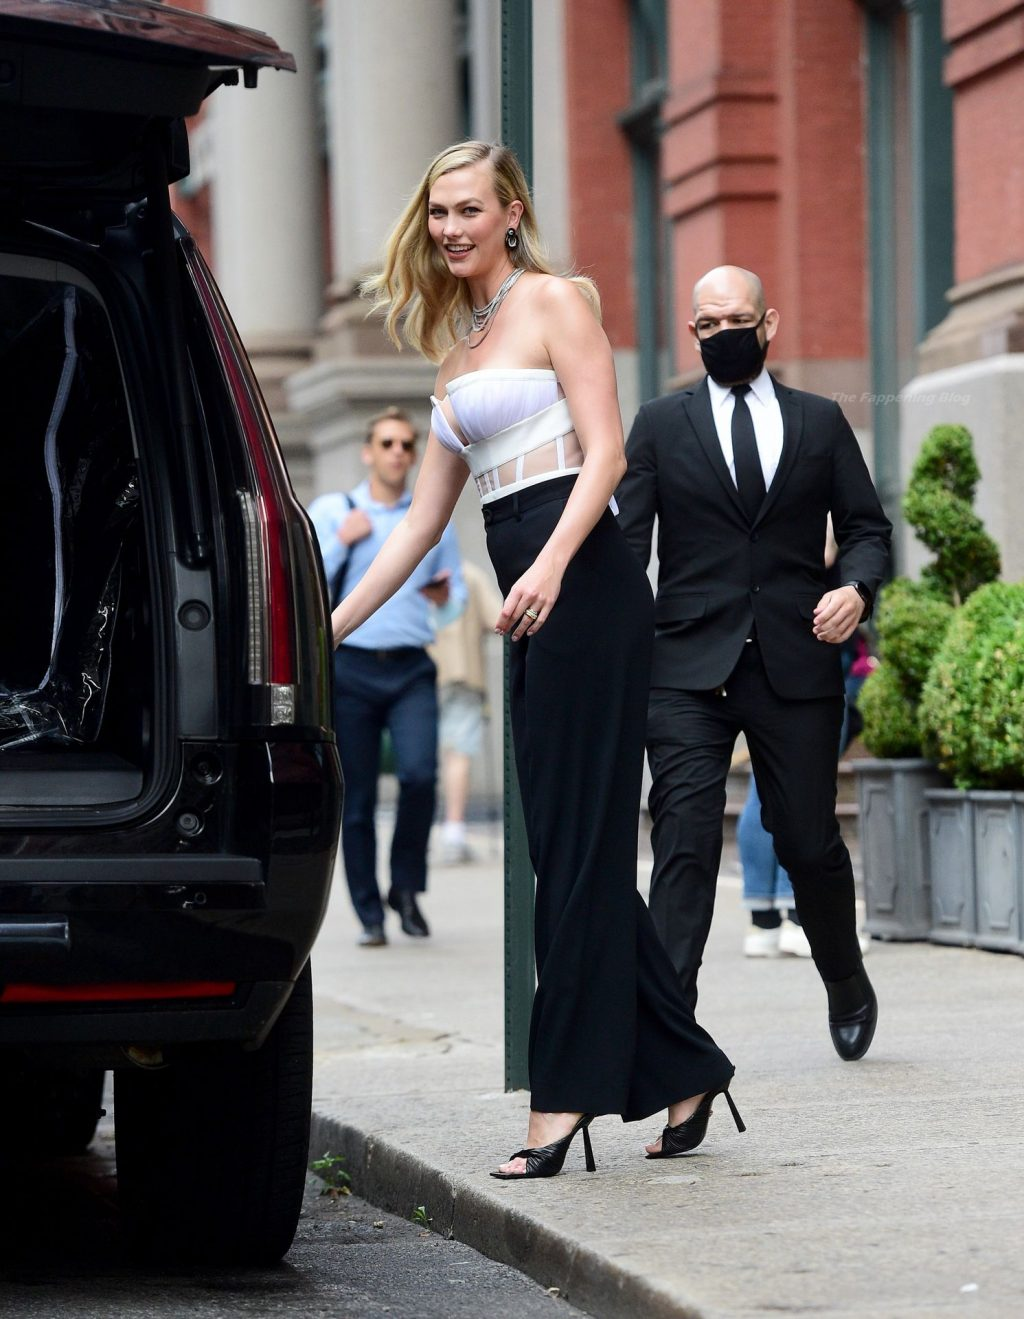 Karlie Kloss Looks Fashionable as She Steps Out in NYC (56 Photos)